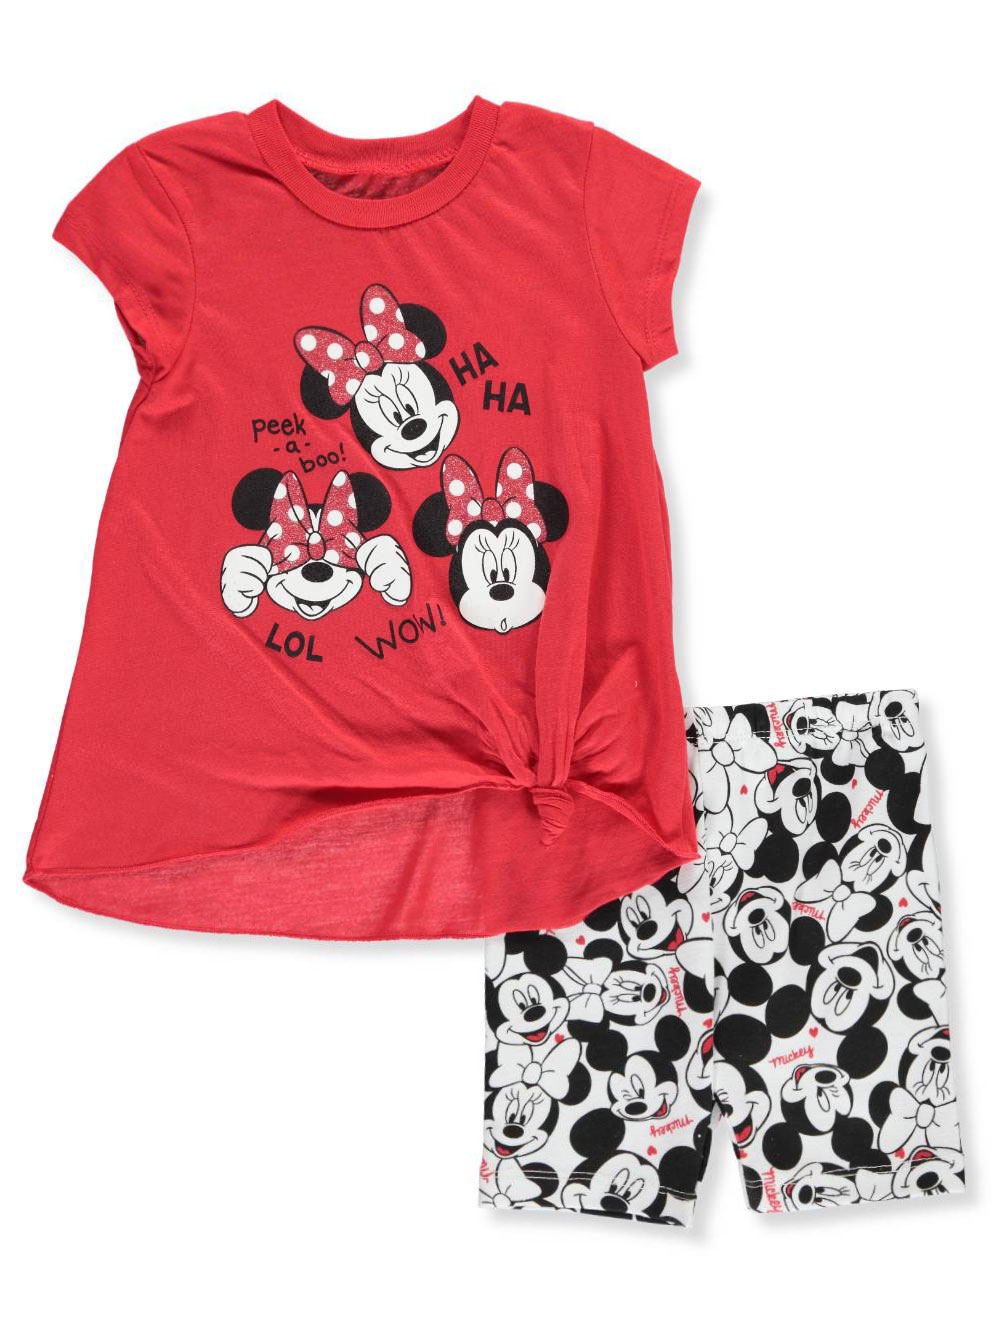 30cd2ee79 Disney Minnie Mouse Baby Girls' 2-Piece Bike Shorts Set Outfit